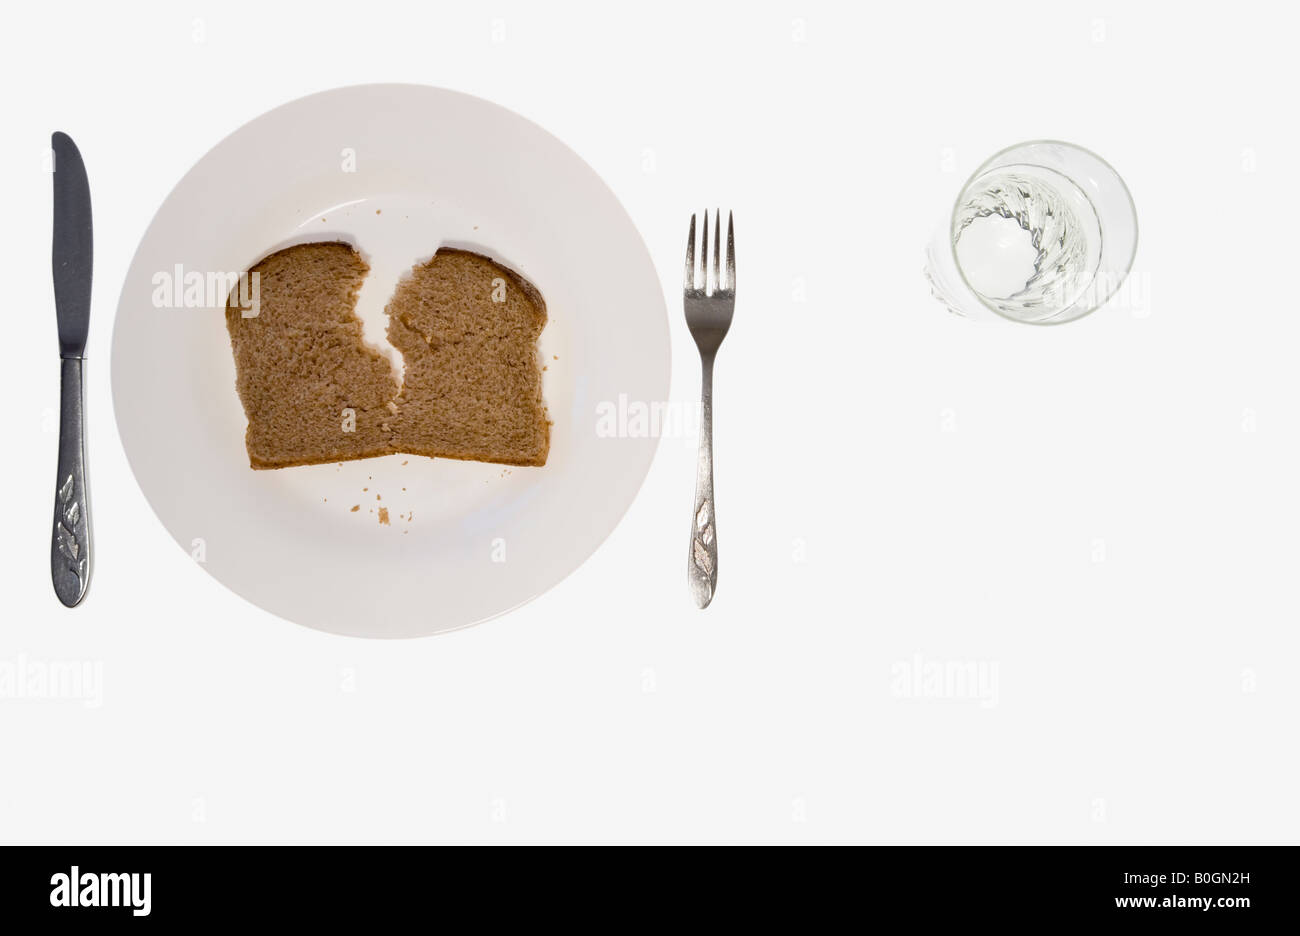 Bread and water with the cutlery positioned for a left handed person - Stock Image